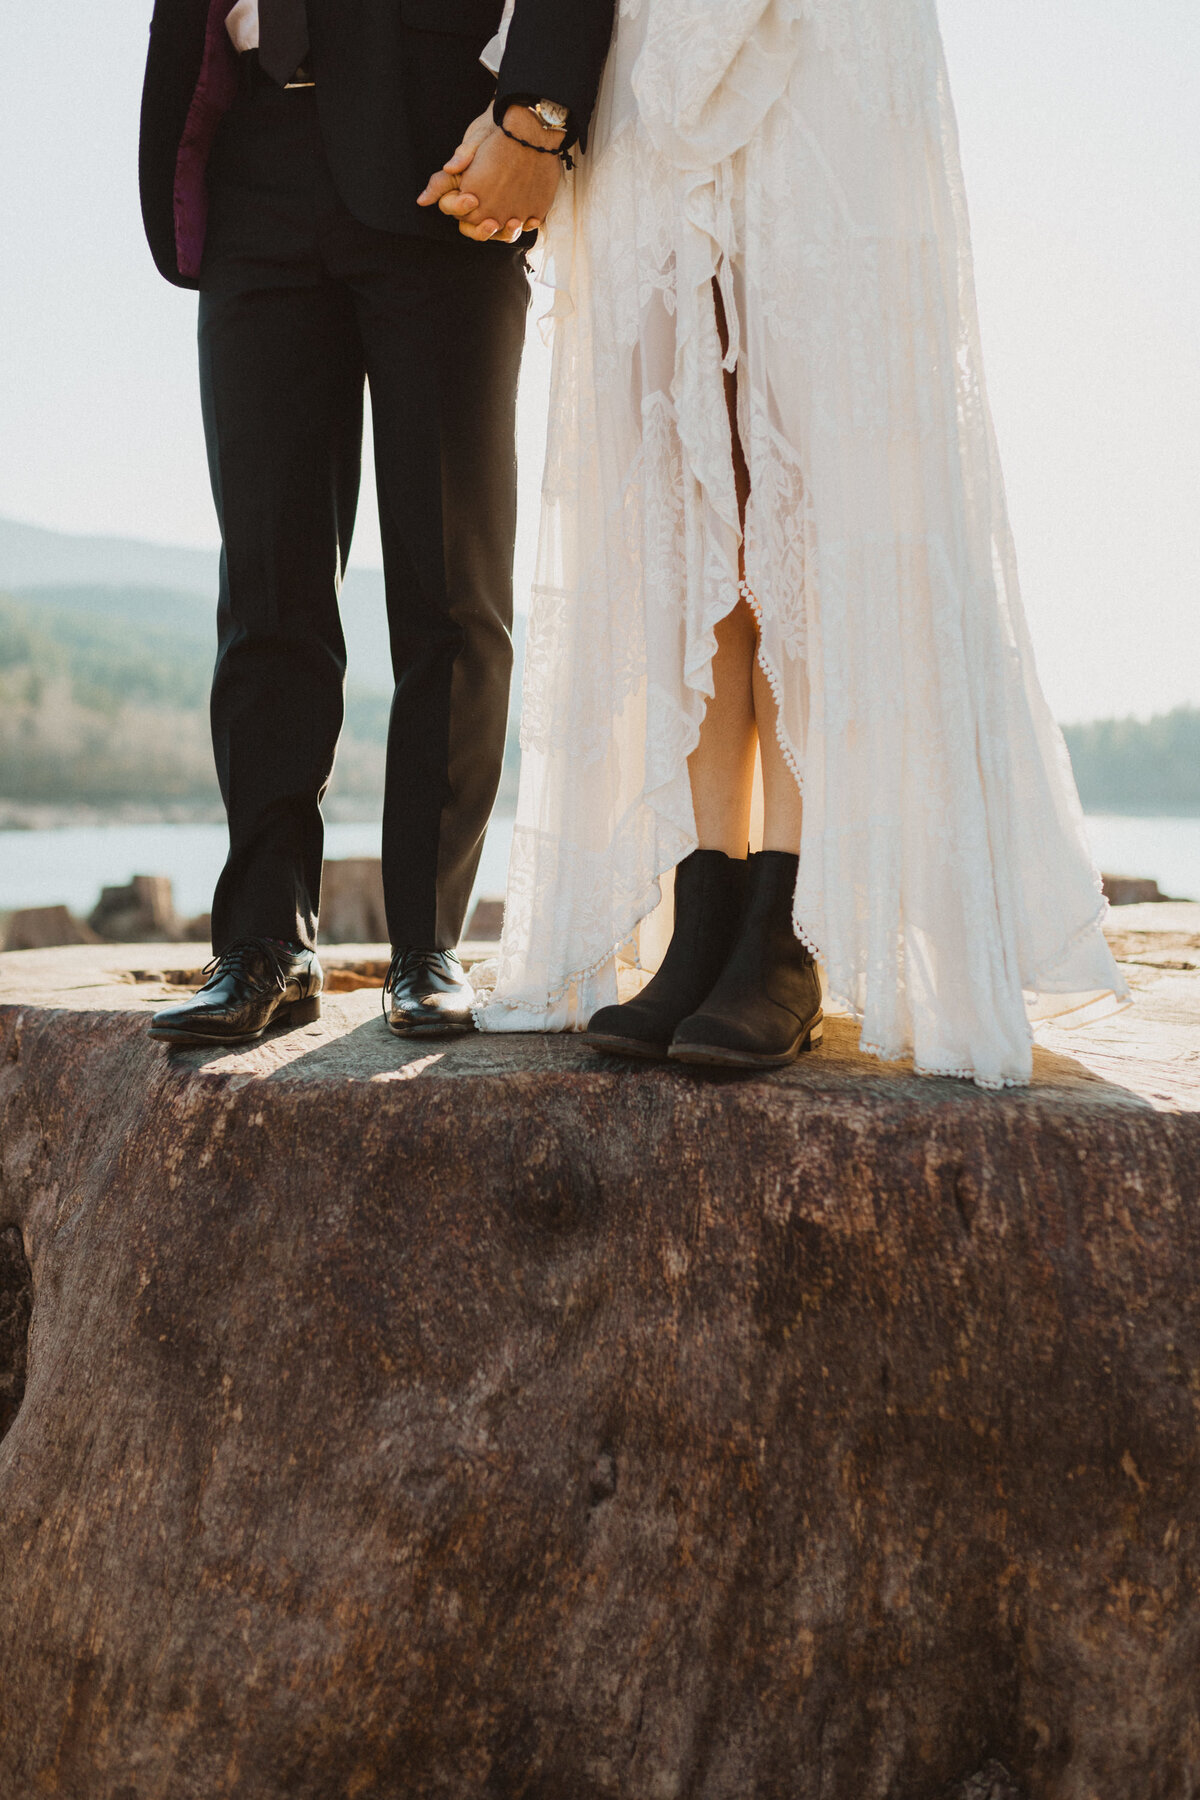 liv_hettinga_photography_seattle_lake_adventure_elopement-6